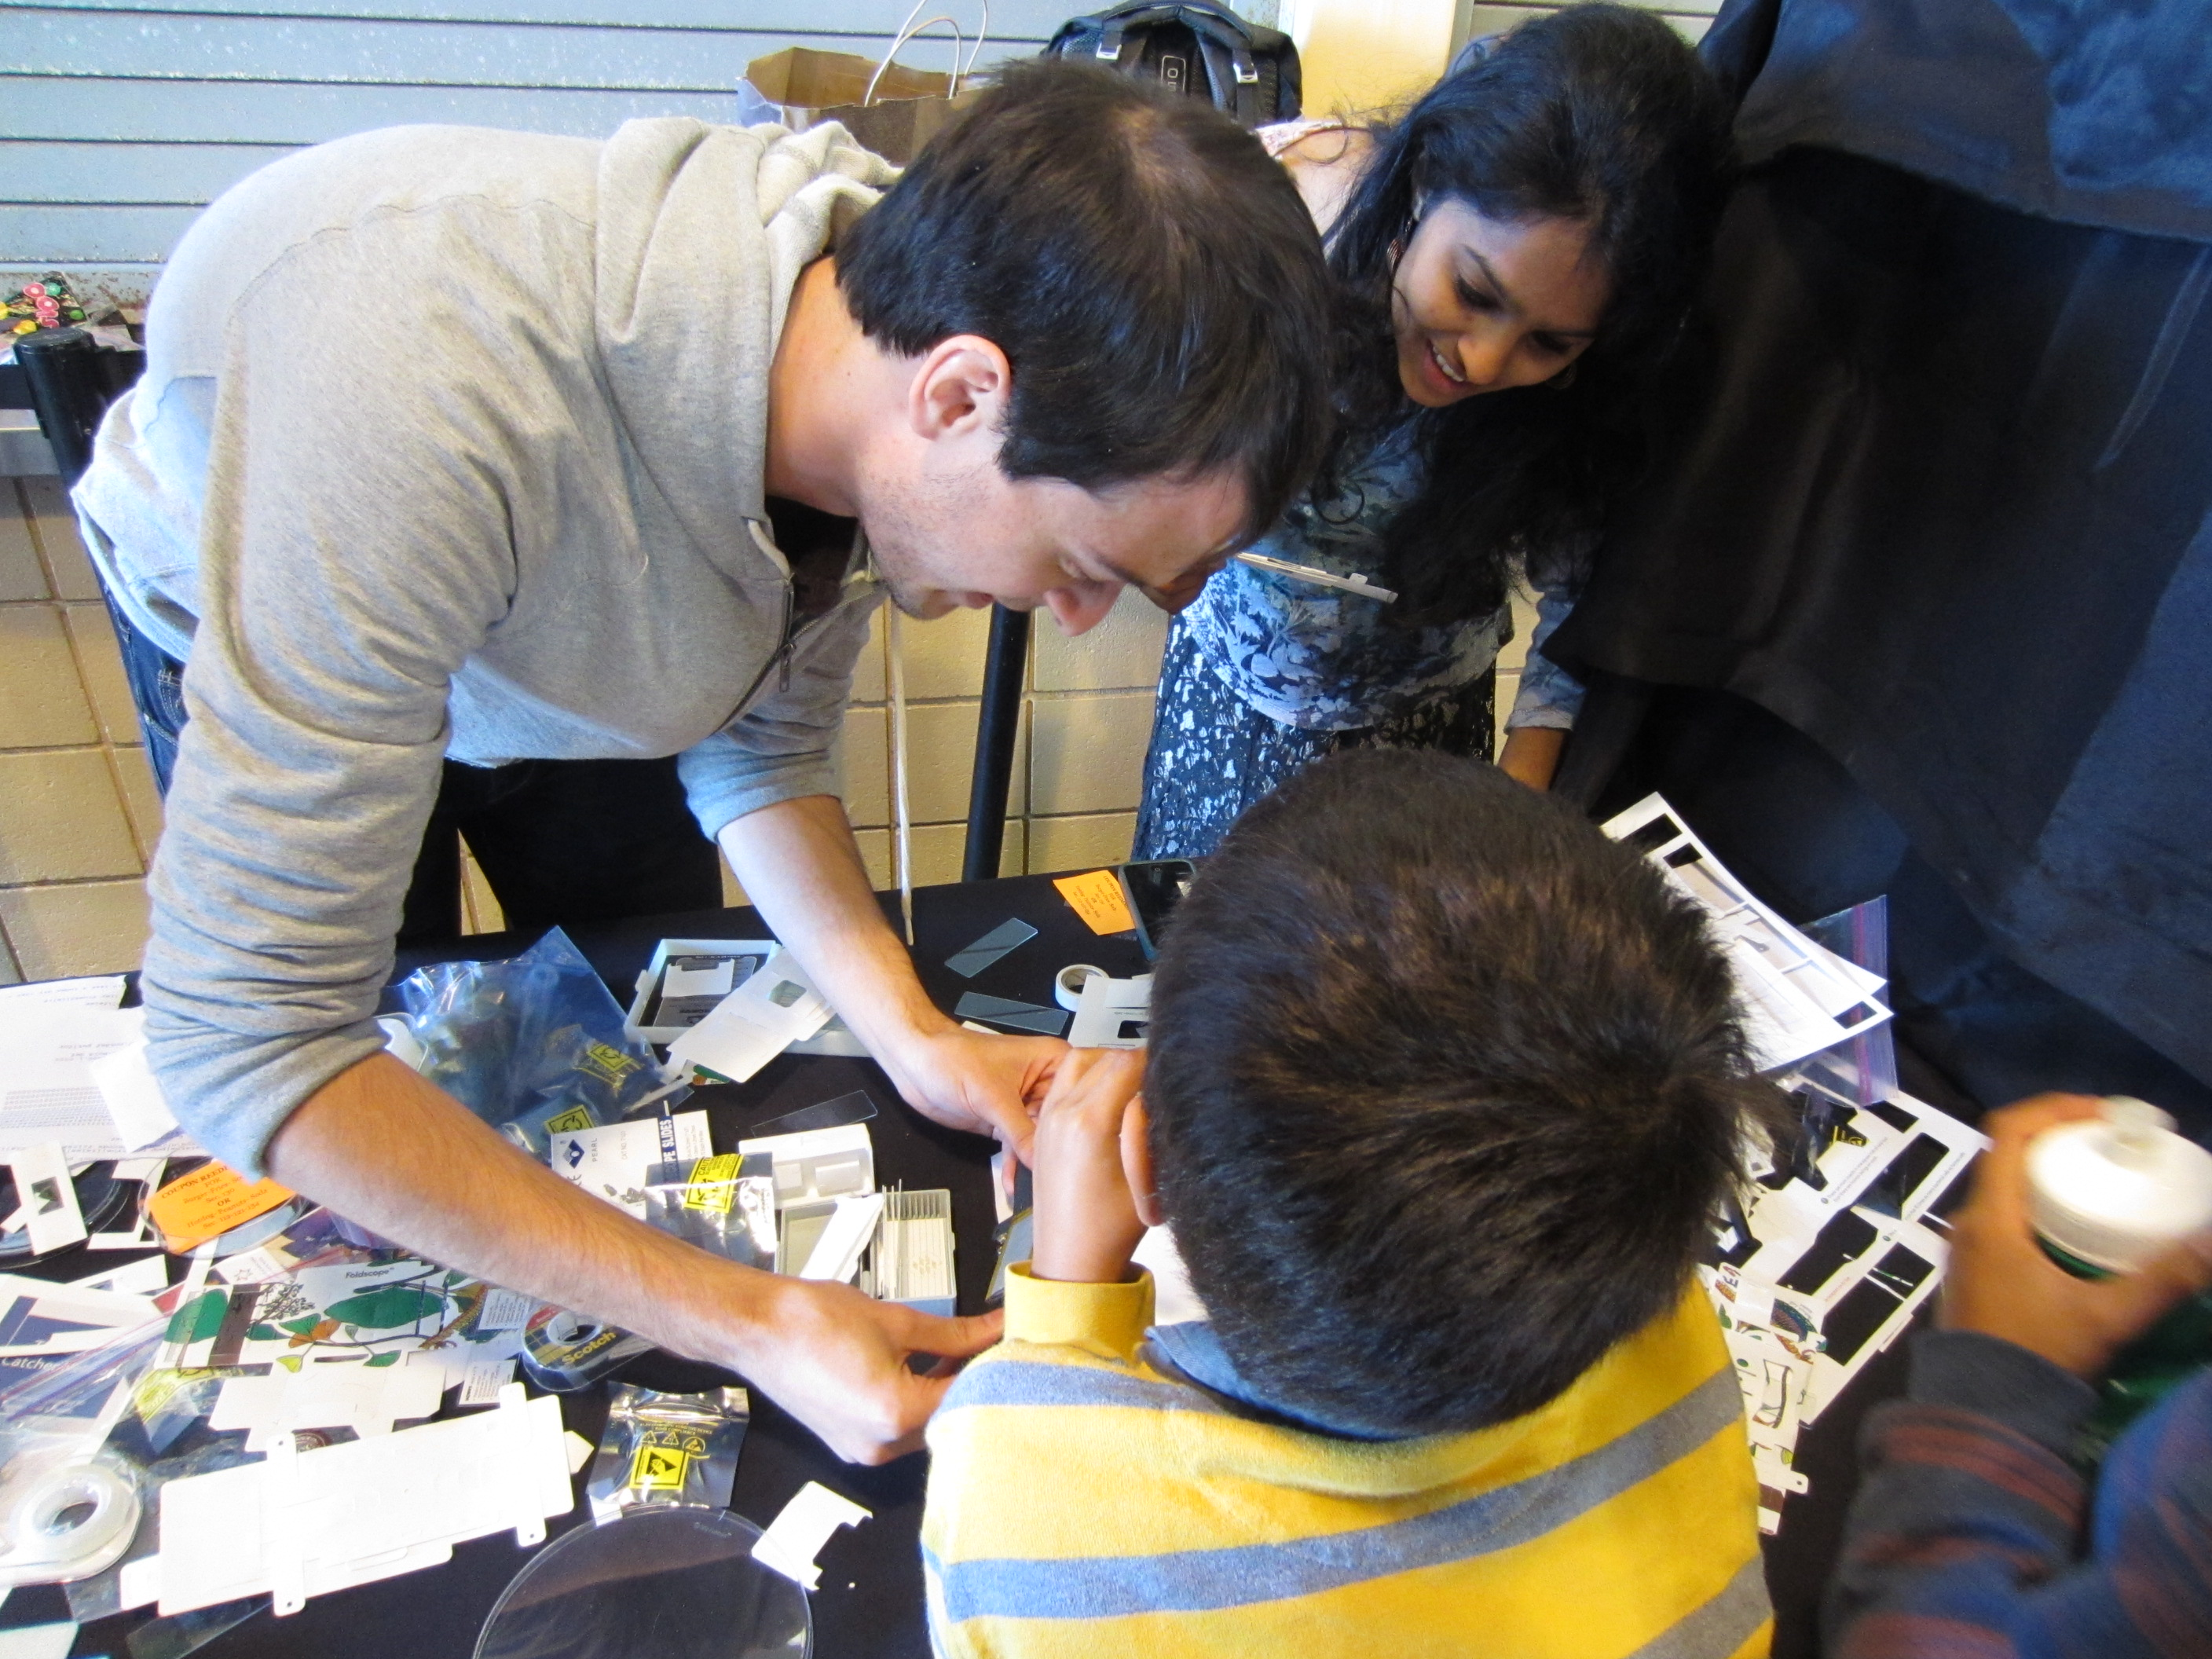 From left: William Gilpin and Sumitra Tatapudy show a young boy how to use a modified Foldscope at the table for the Prakash Lab from Stanford University. This Foldscope had a battery powered light and when Gilpin put a slide of an ant in the scope, a magnified image of the ant was projected onto the paper in front of the boy. Gilpin is a PhD student in applied physics at Stanford University, and Tatapudy is a graduate student in the Tetrad Program at University of California, San Francisco. (Shara Tonn/Peninsula Press)